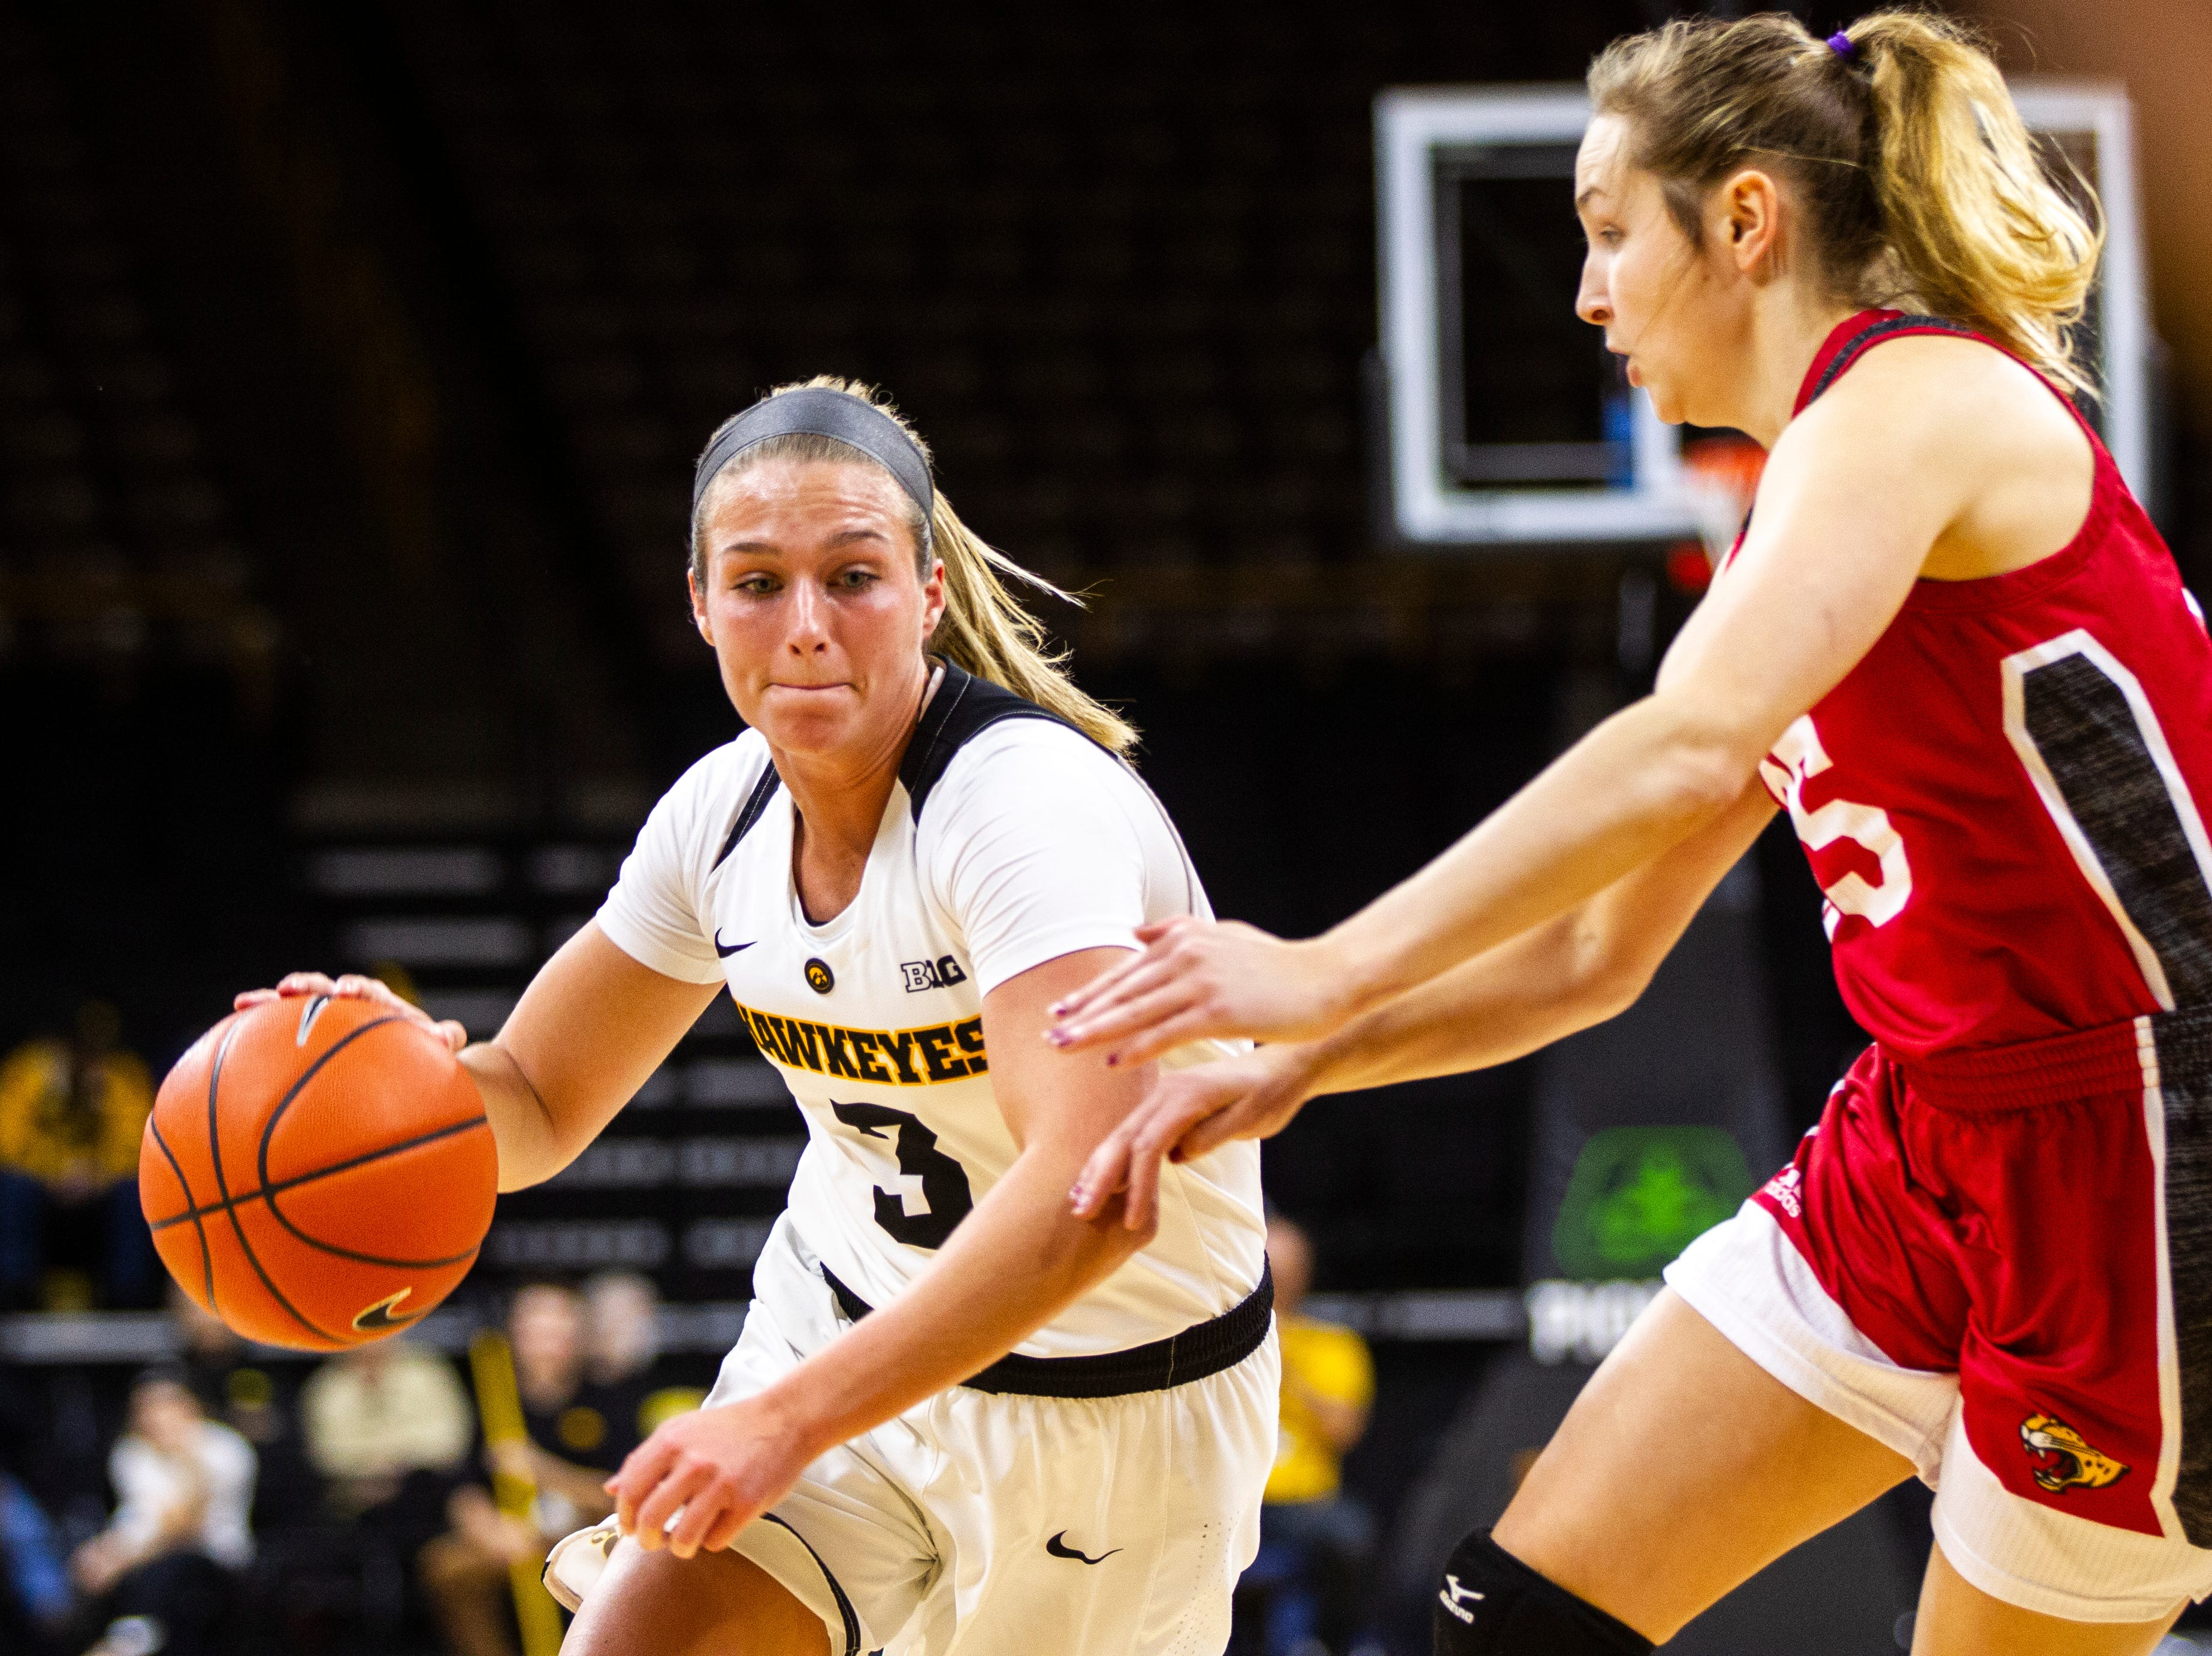 Iowa guard Makenzie Meyer (3) drives to the basket during a NCAA women's basketball game on Saturday, Dec. 8, 2018, at Carver-Hawkeye Arena in Iowa City.